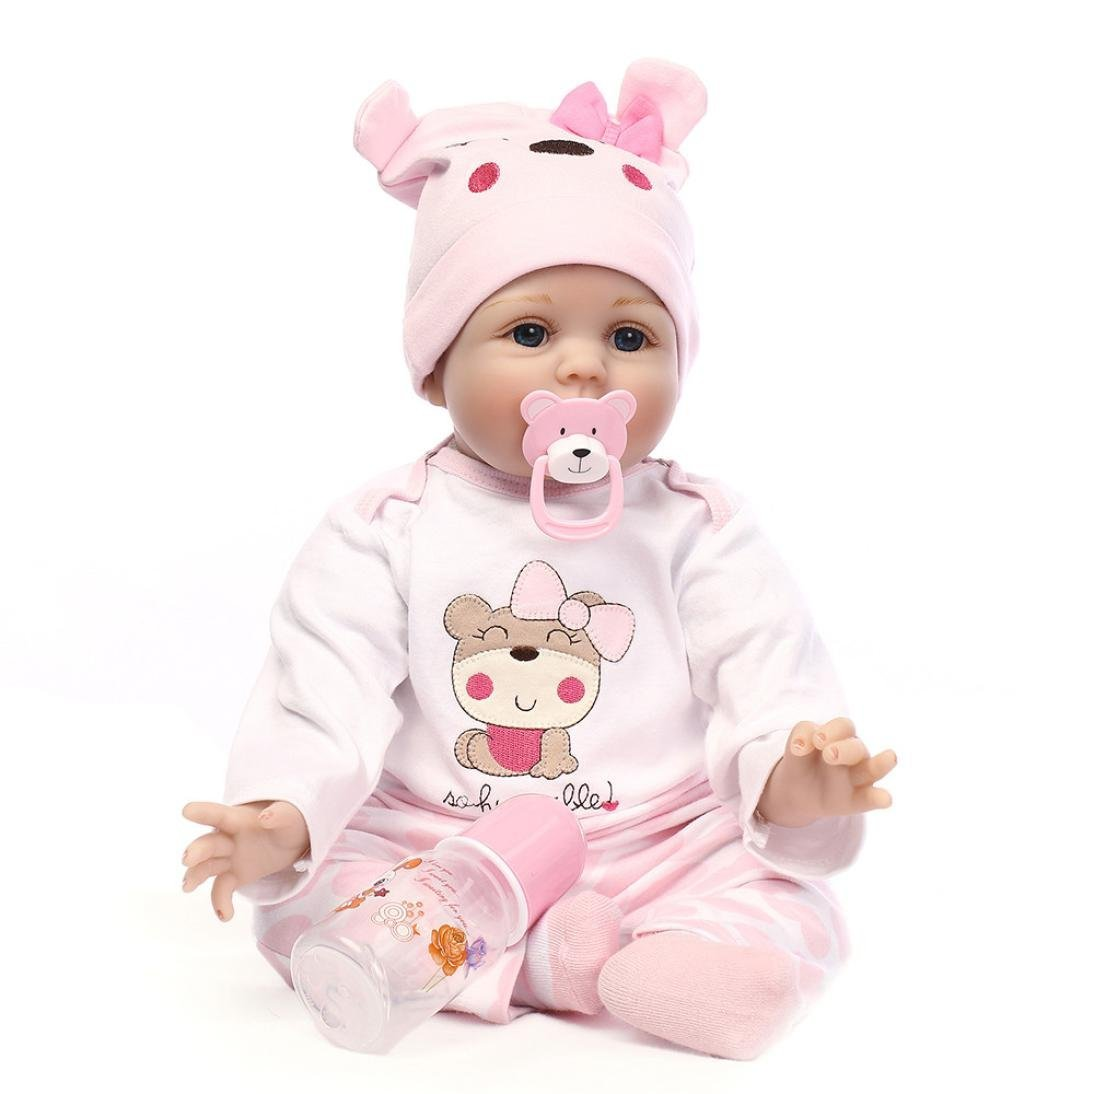 Kehome Reborn Toddler 55cm 22'' Reborn Baby Doll Realistic Girl Weighted Doll Gift Set Lifelike Soft Silicone Vinyl Child Growth Partner Lovely Birthday Gift Xmas Present (22 Inch)